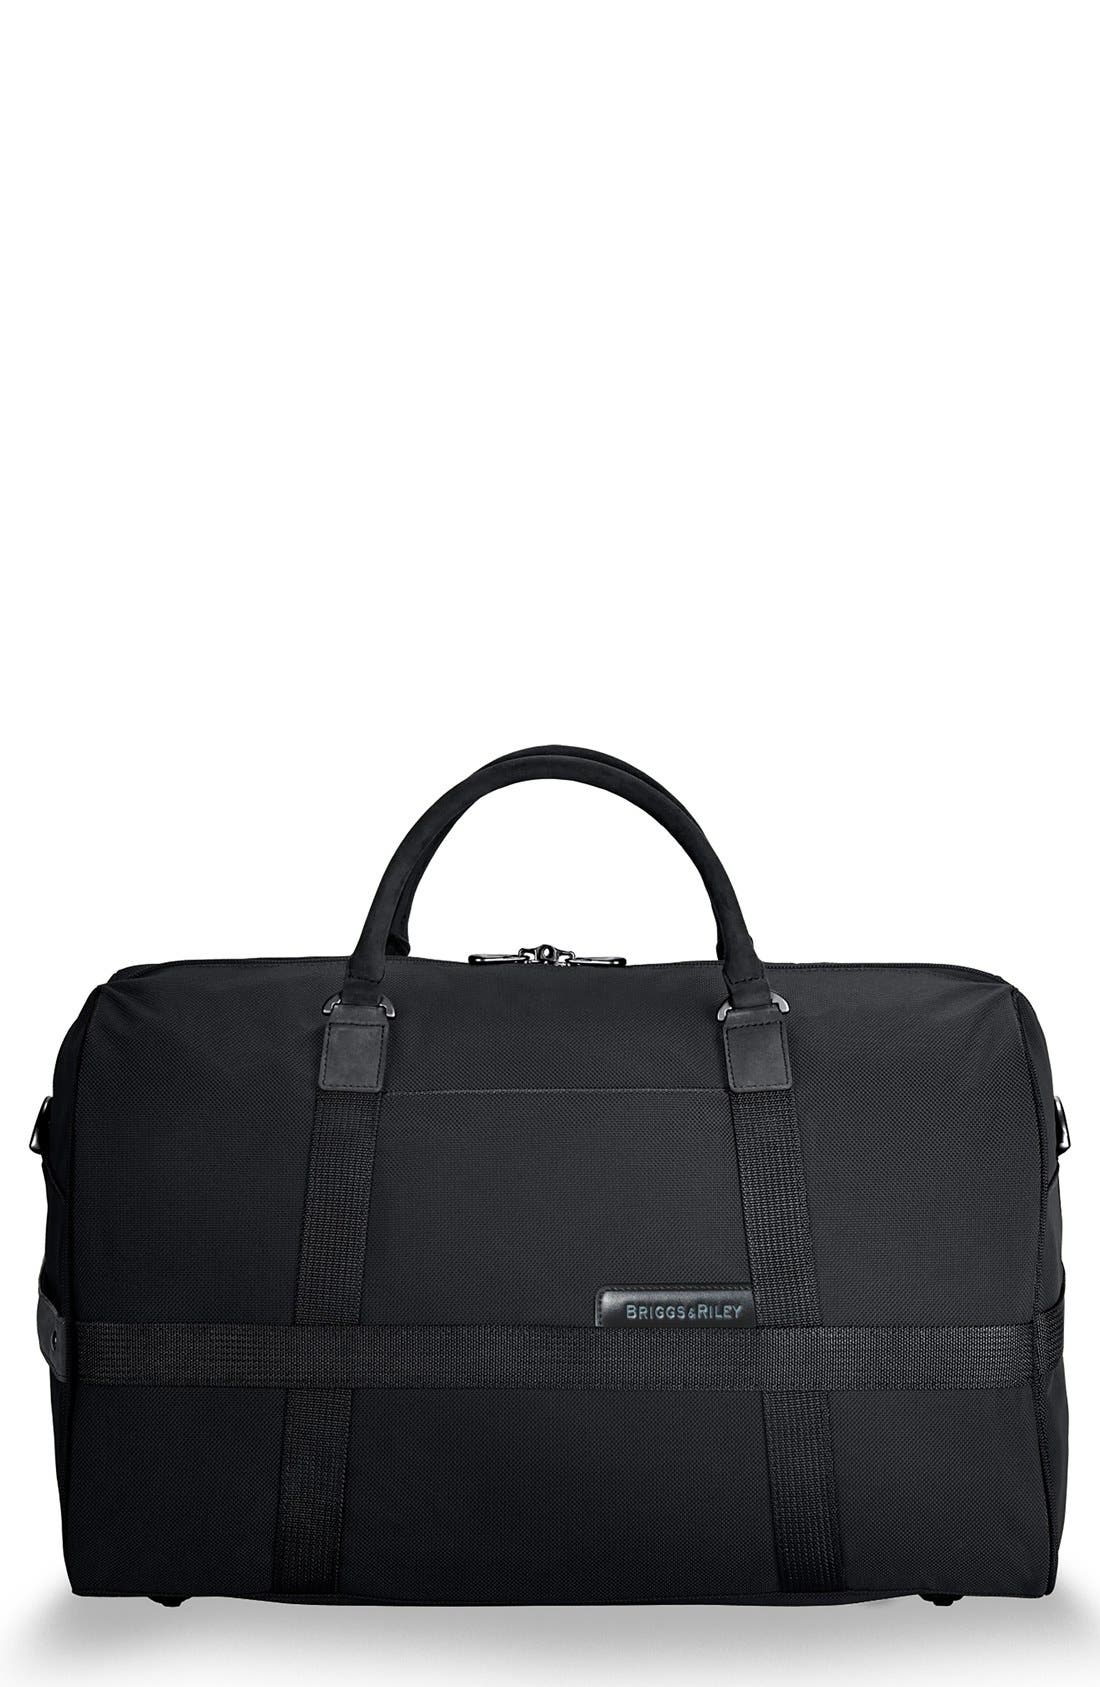 Alternate Image 1 Selected - Briggs & Riley 'Baseline - Medium' Duffel Bag (22 Inch)